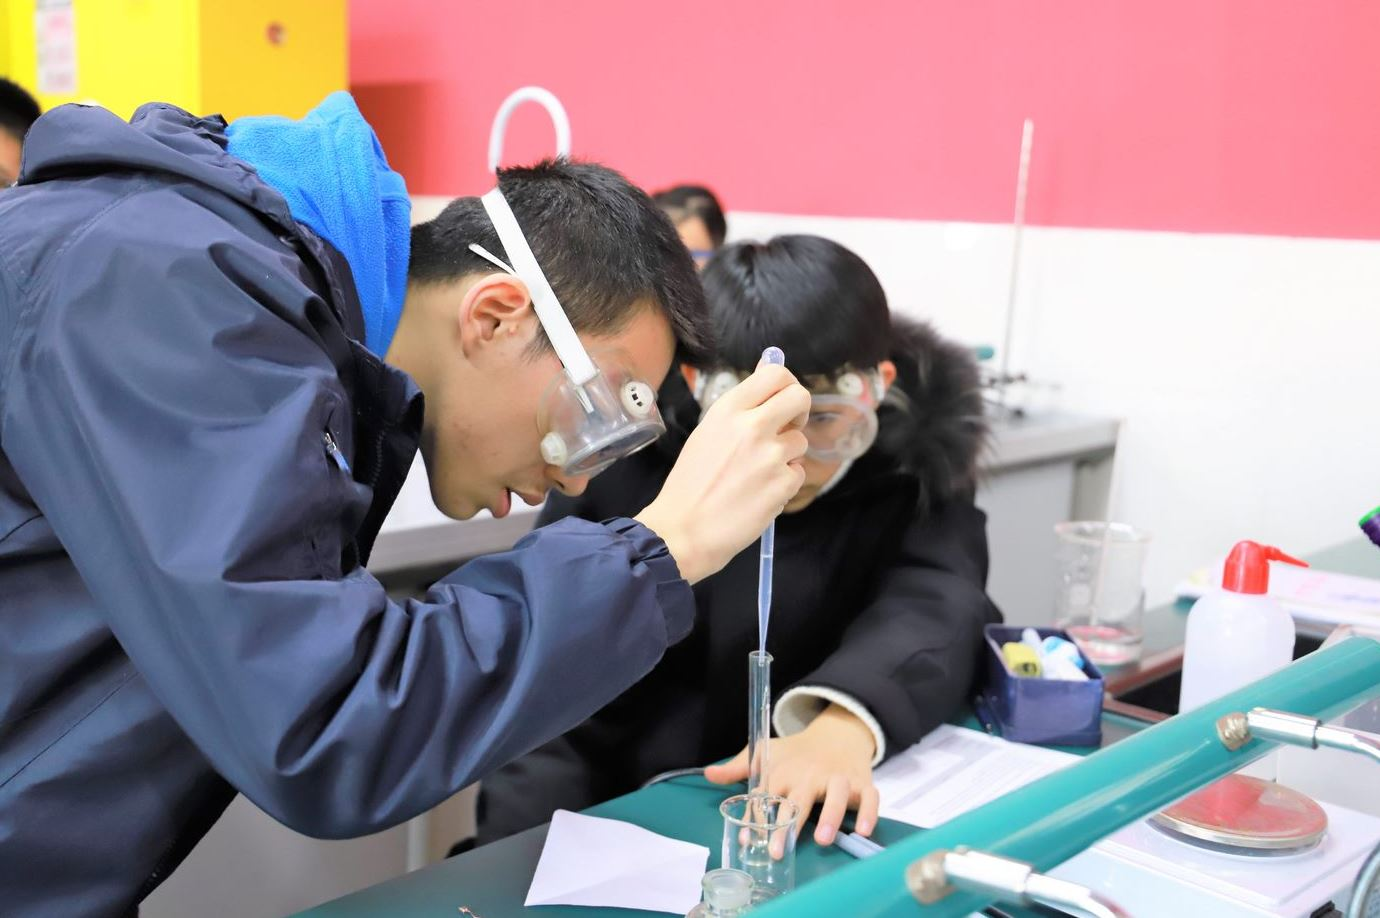 Chinese students Test Chemical Reactions in Chemistry Class